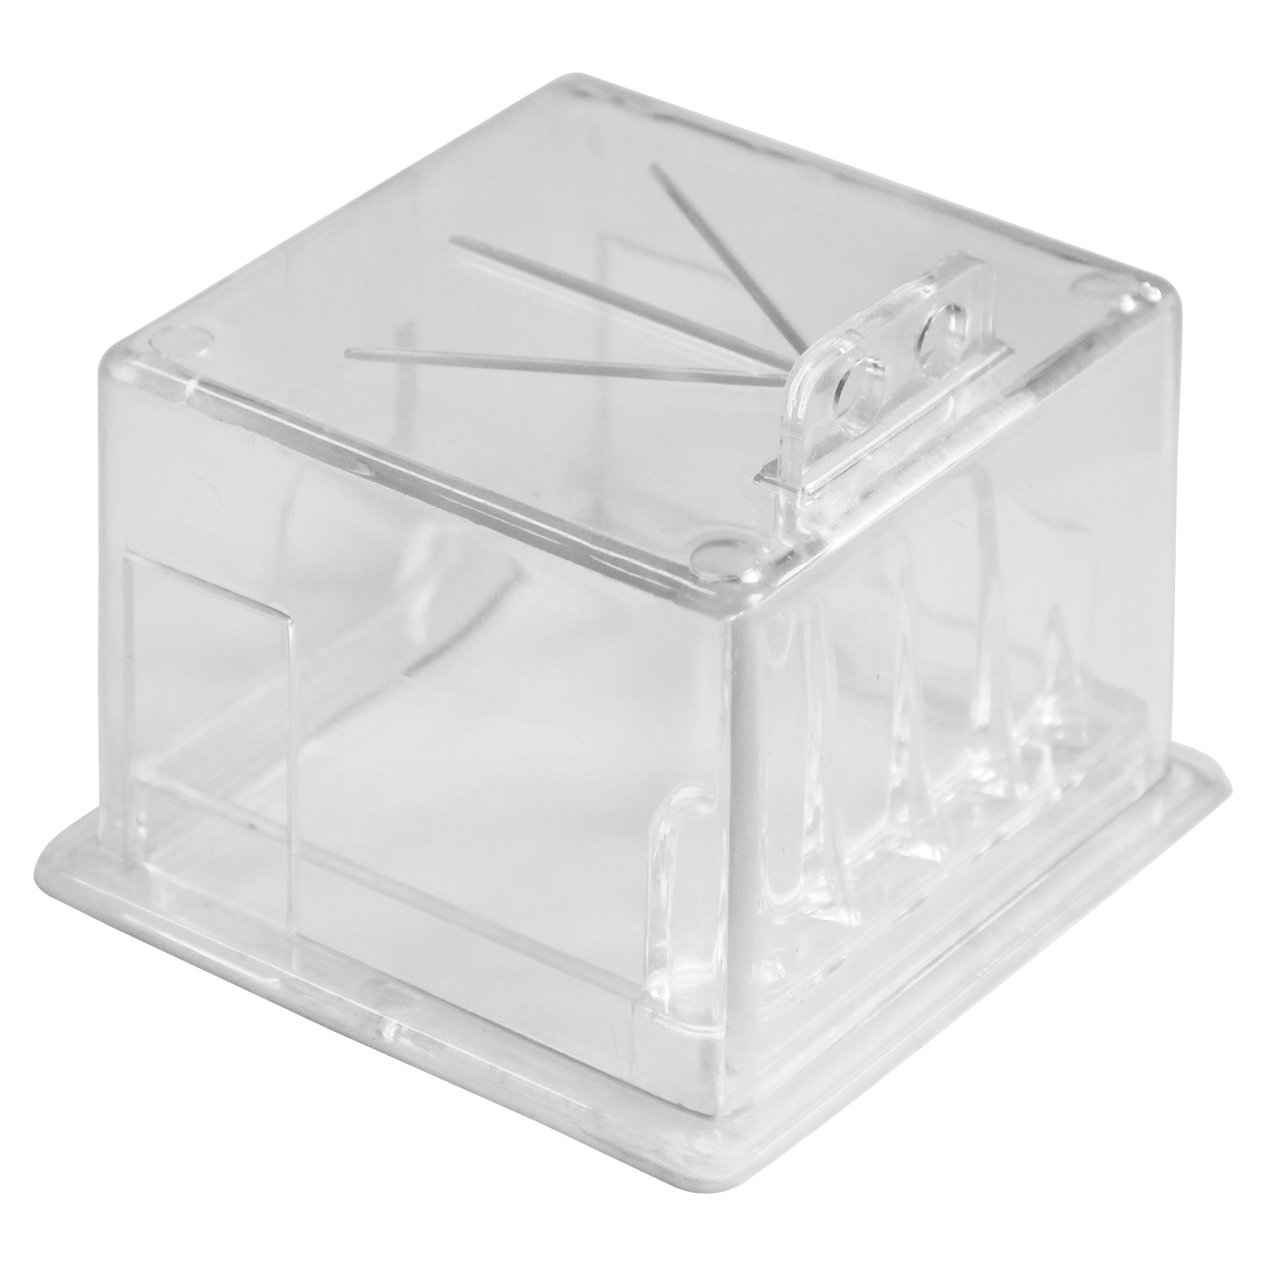 Lockout Safety Supply 7280 Electrical L Purchase Square Panel Special price for a limited time Box